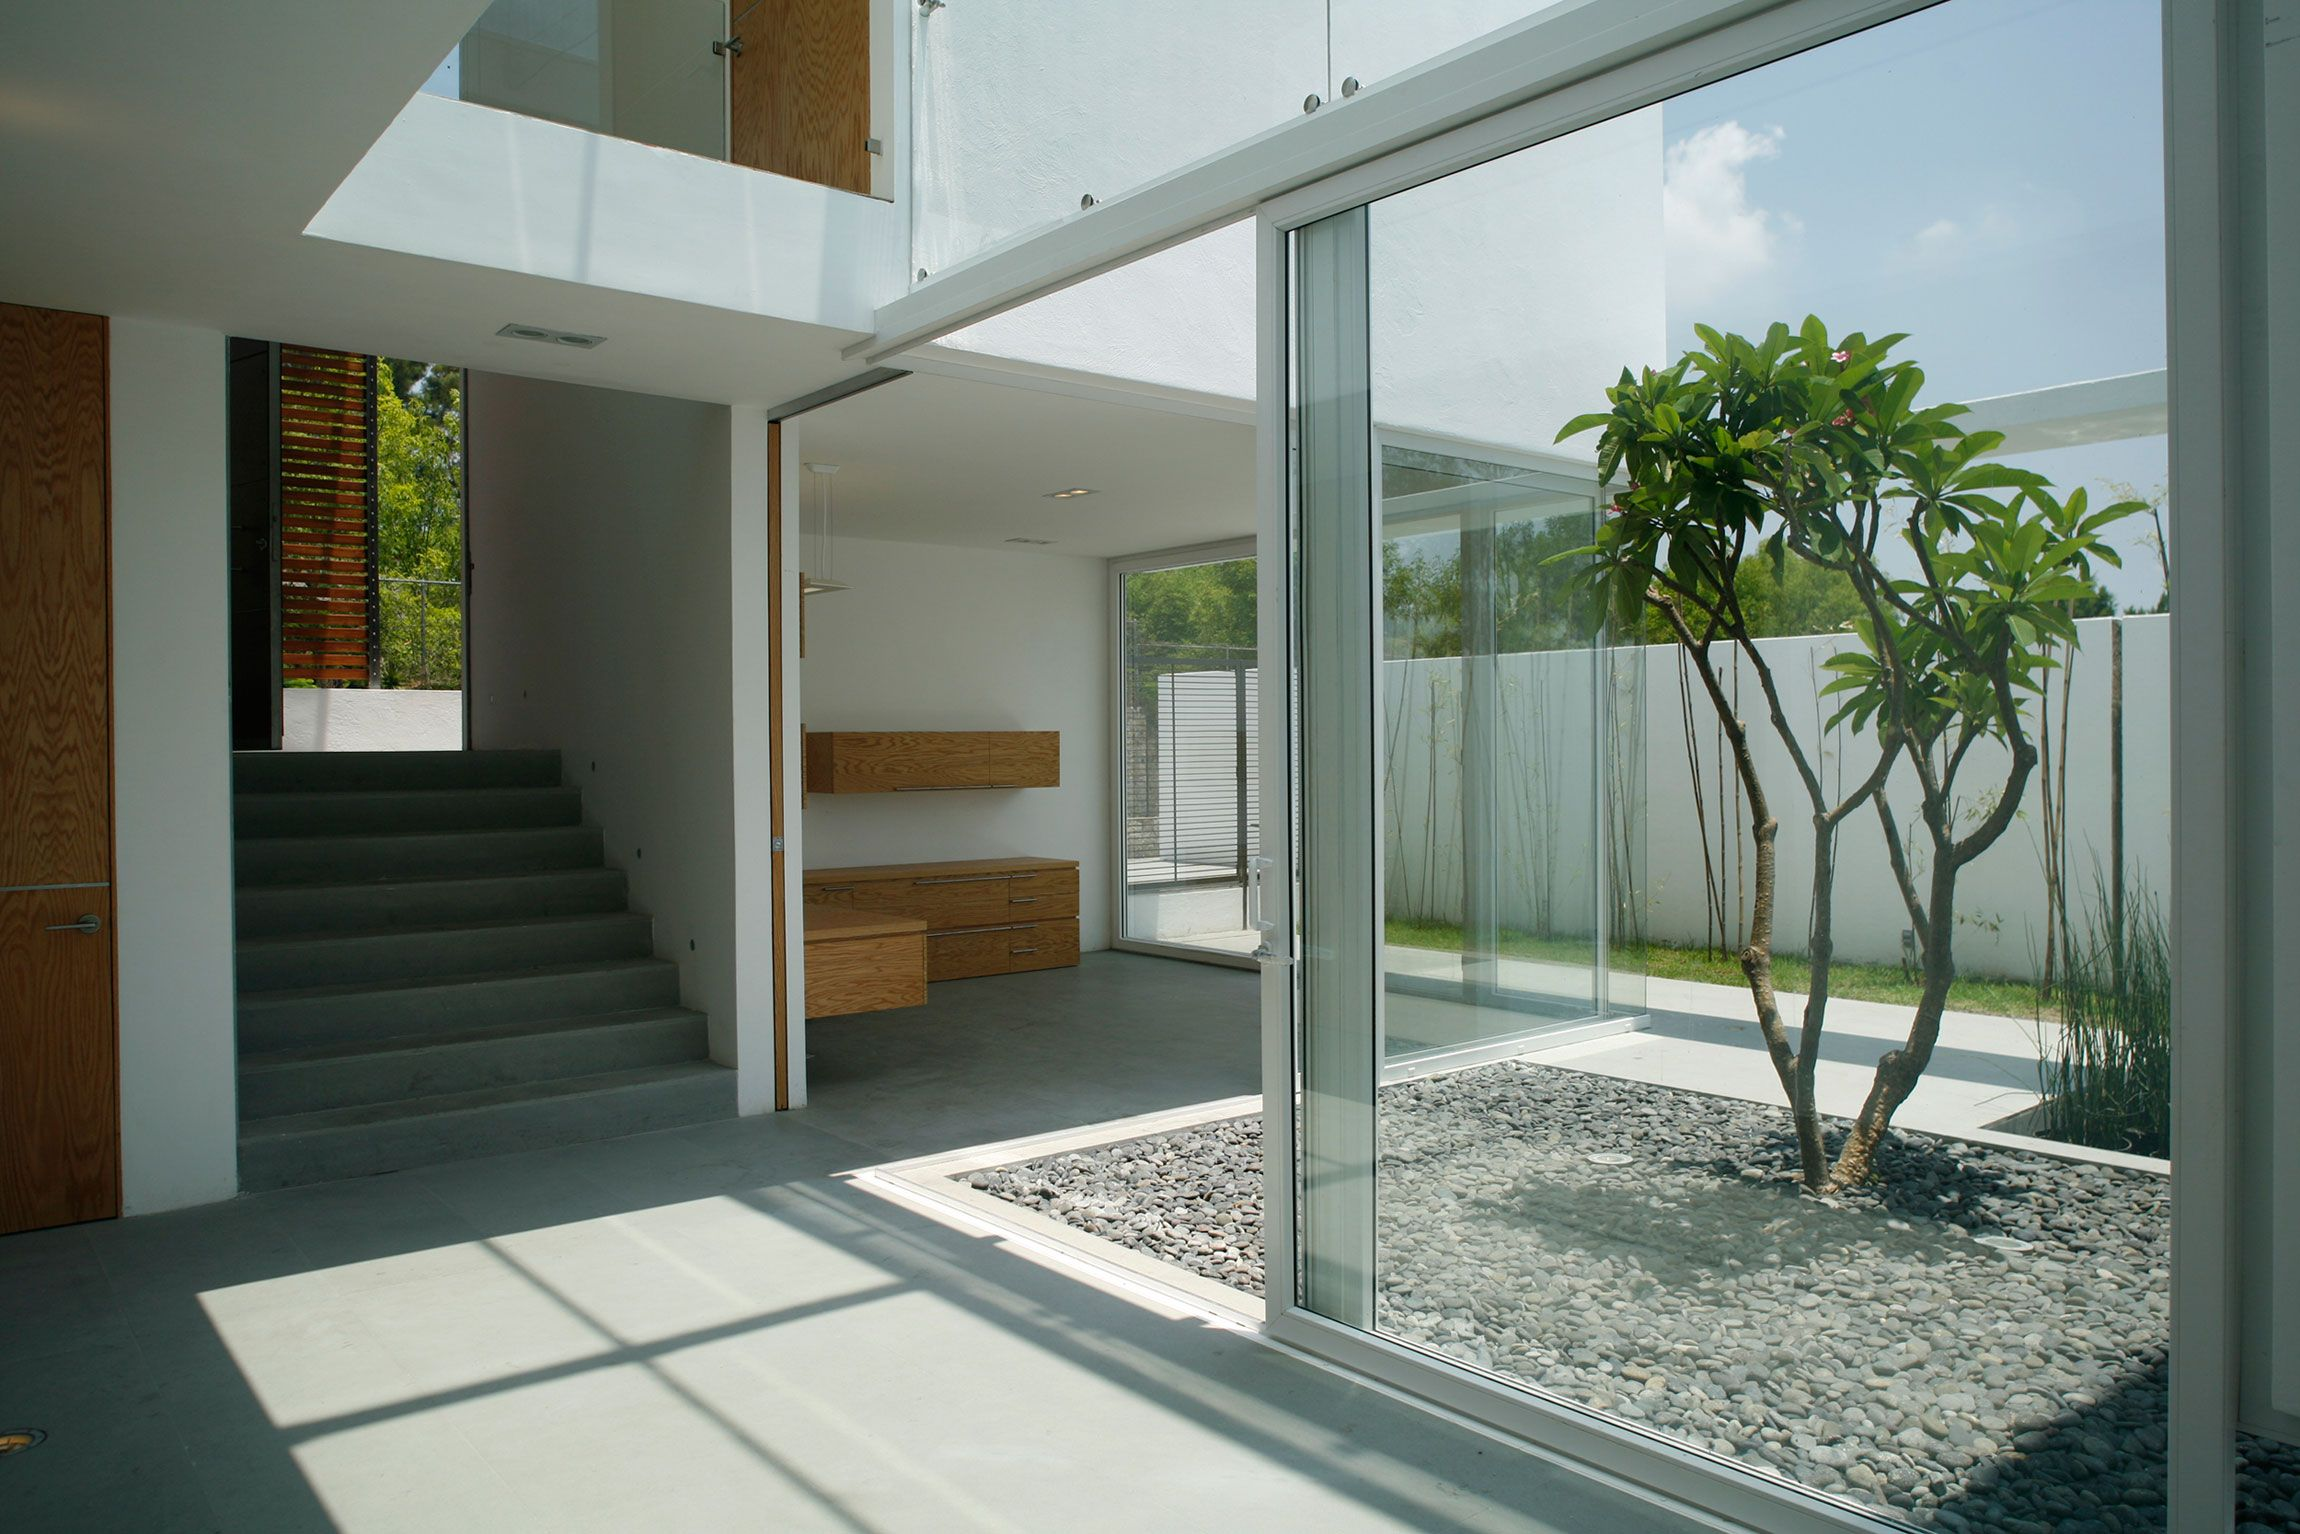 Architecture mesmerizing small courtyard modern minimalist for Modern glass designs